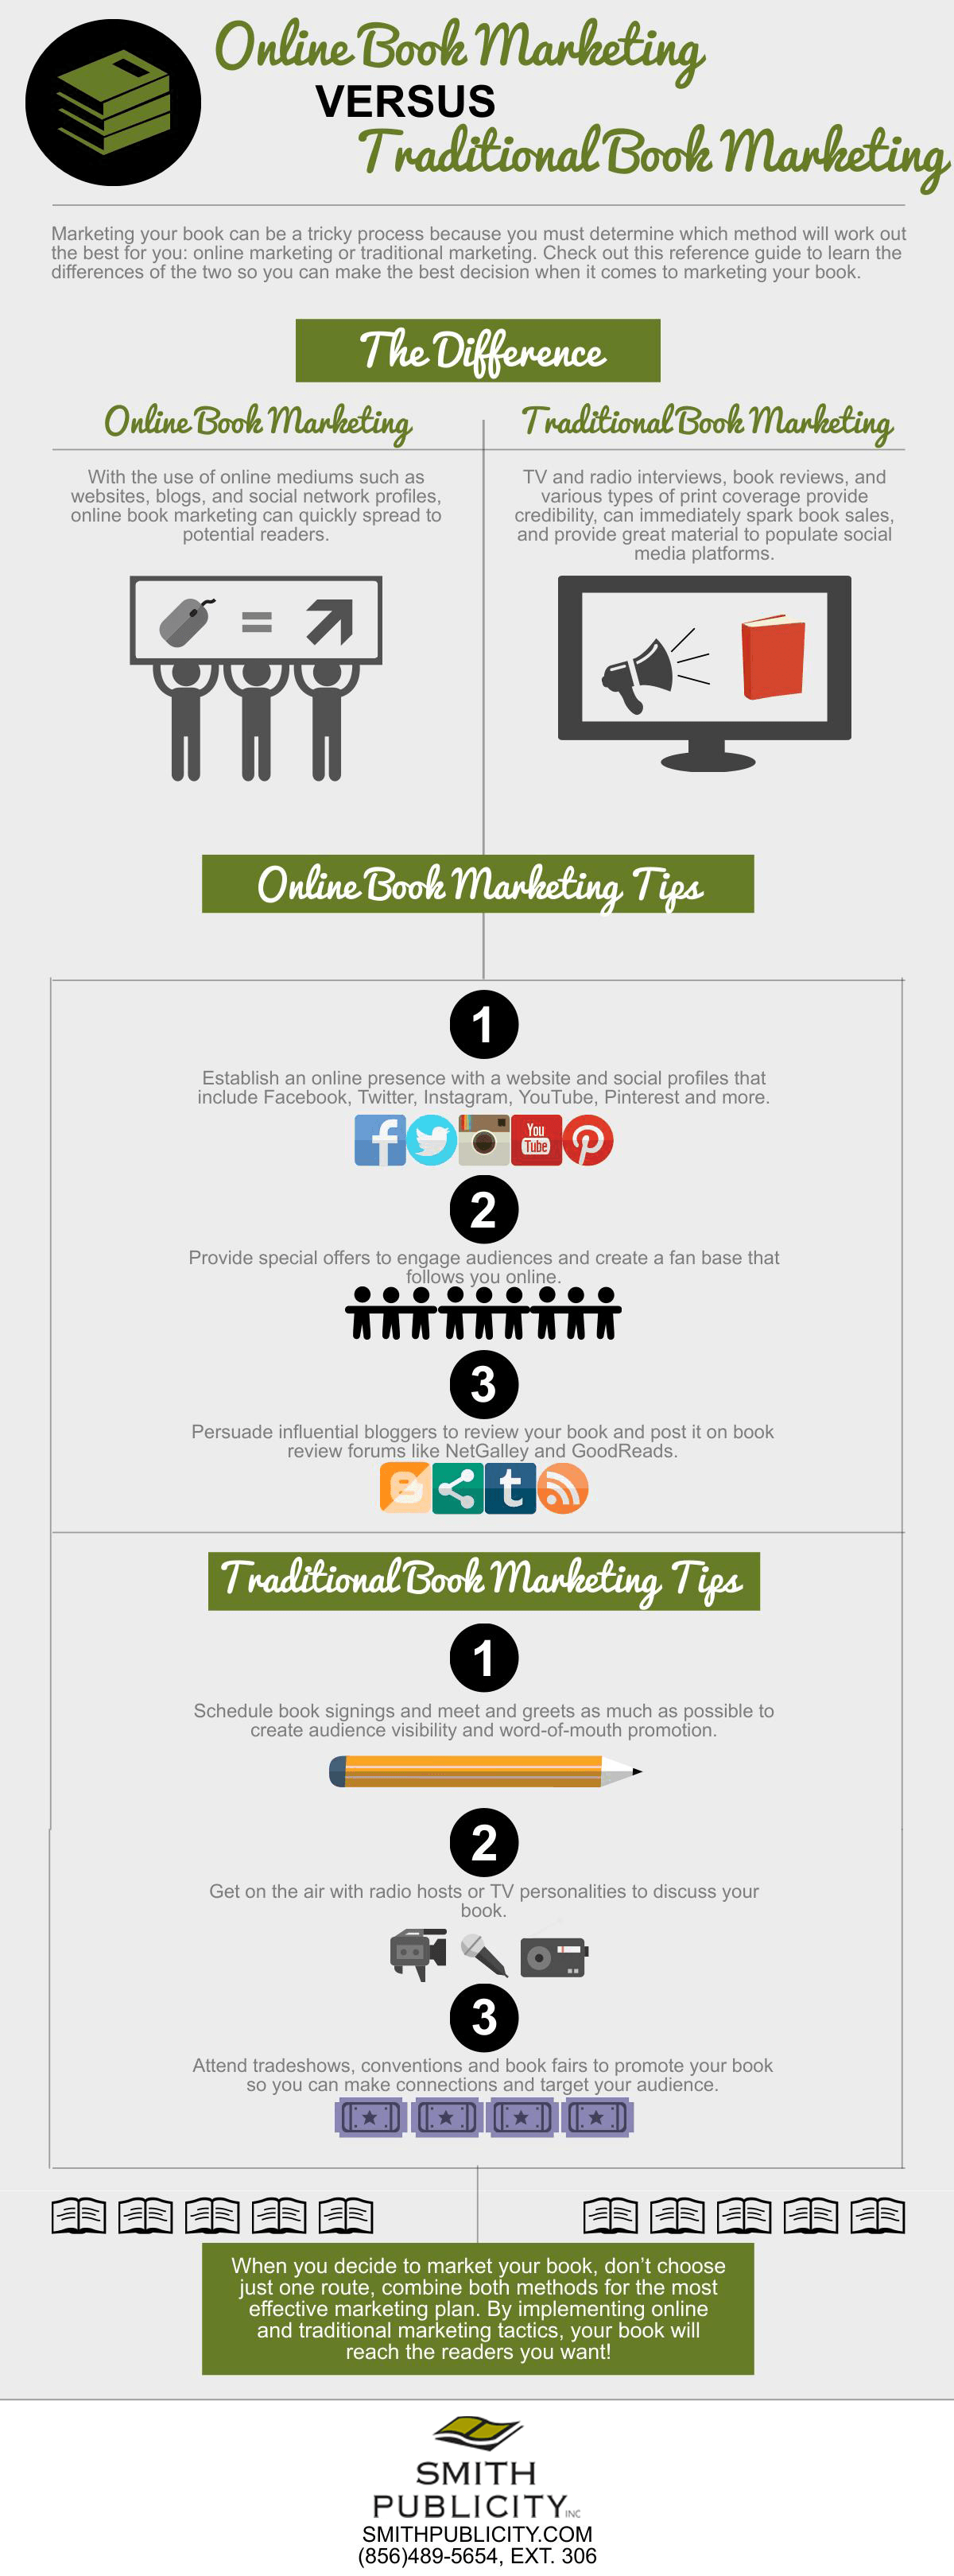 Online Book Marketing versus traditional book marketing; a detailed infographic by the professional book publicists at Smith Publicity